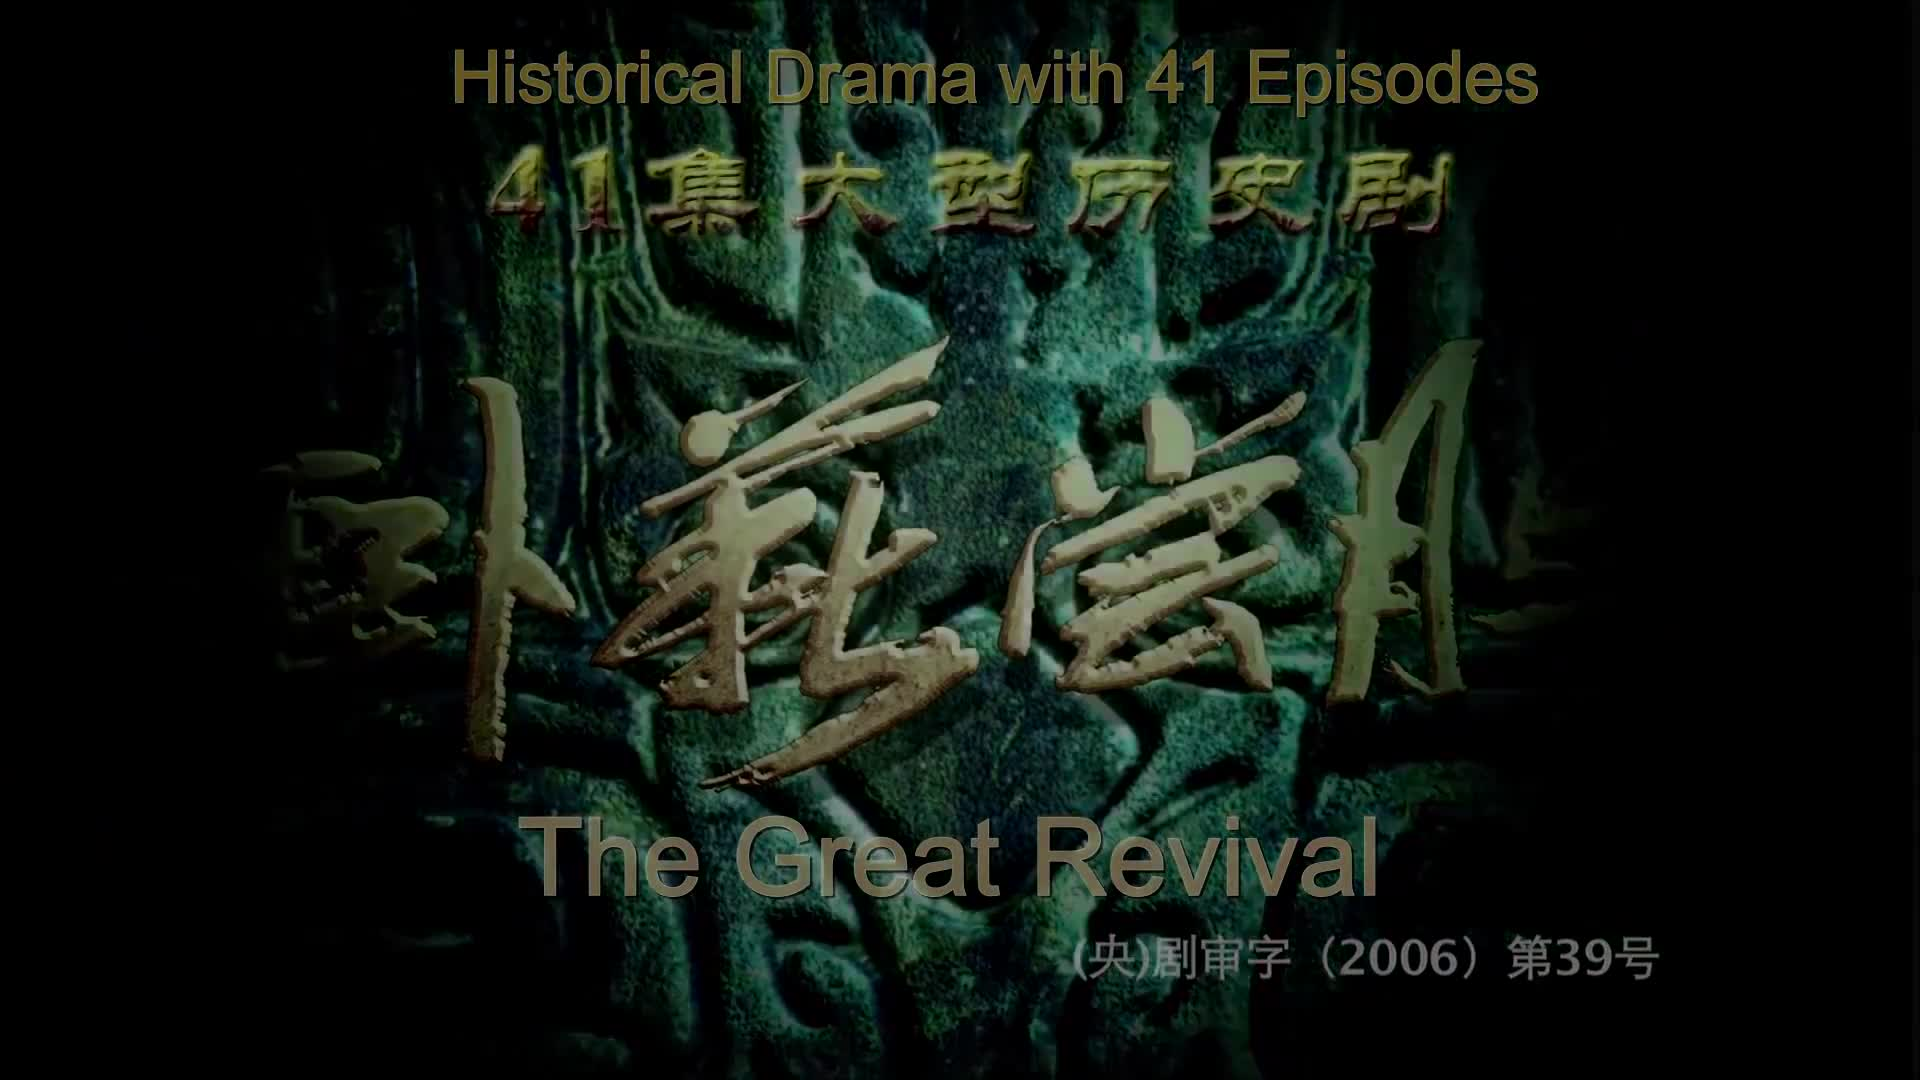 The Great Revival (2007)